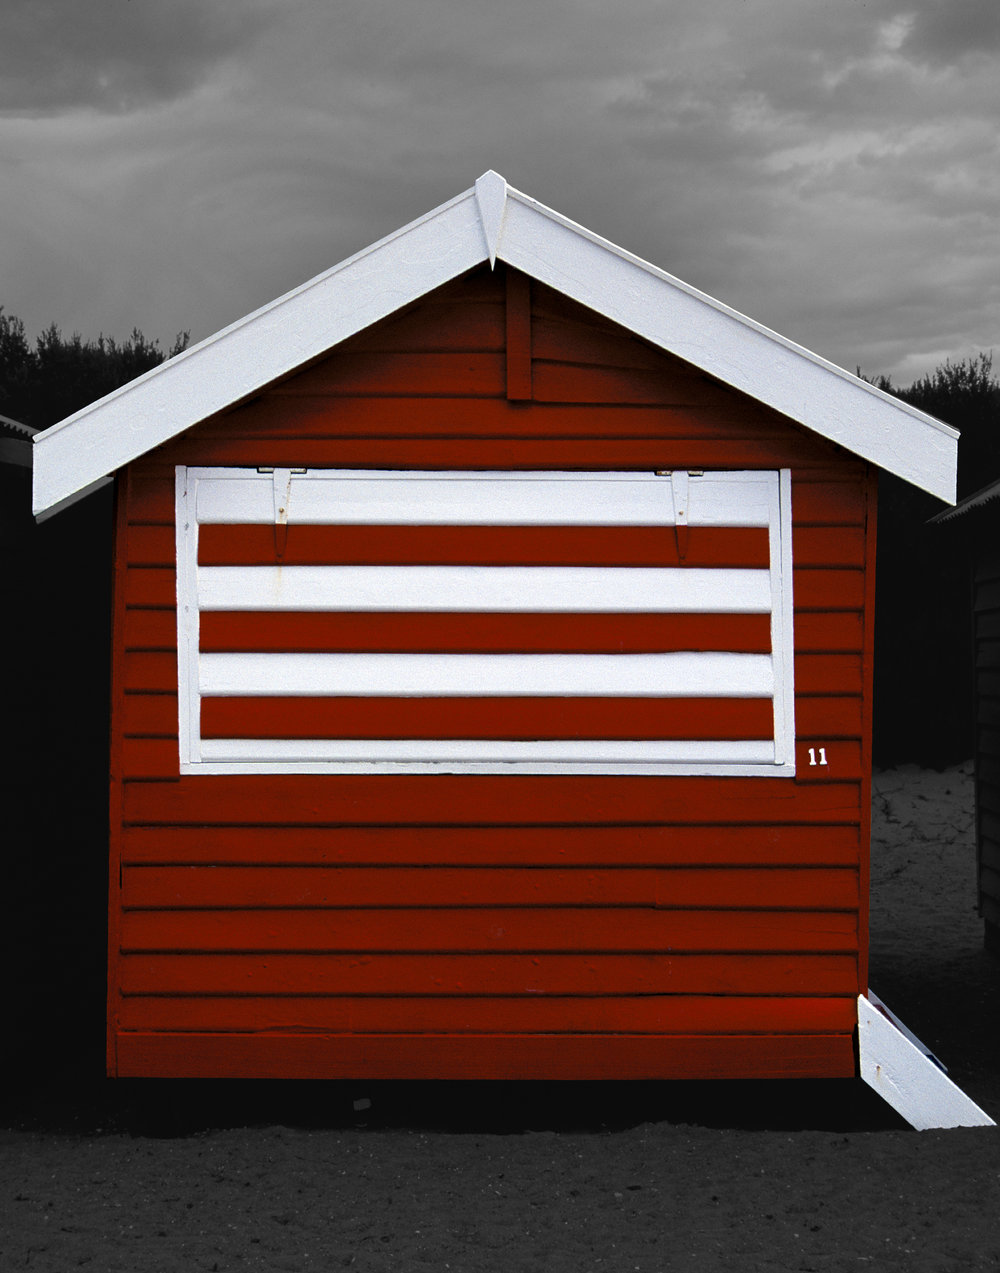 Judy Gelles,  Beach Box No. 11 , 2003  Digital pigment print, 8 x 10 in, edition of 20; 11 x 14 in, edition of 25; 16 x 20 in, edition of 25   Inquire